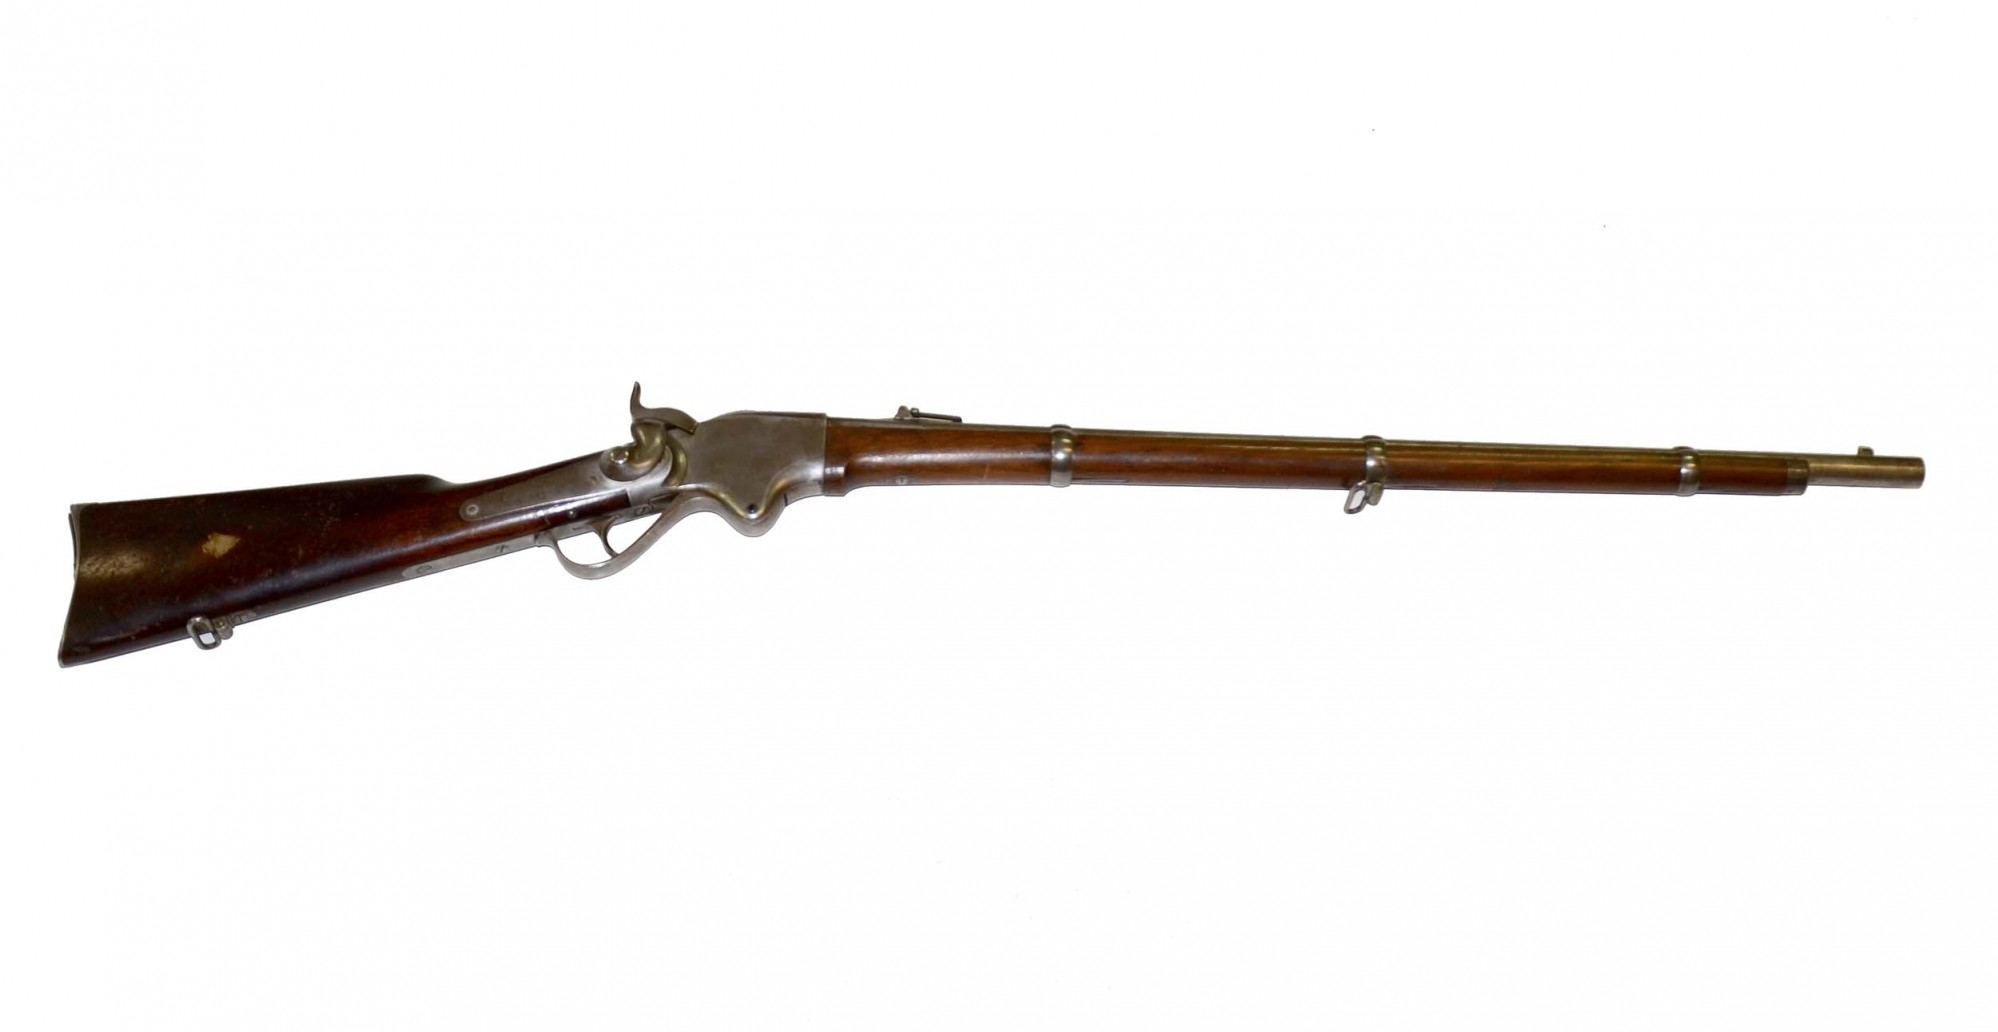 ID'D M1860 SPENCER REPEATING RIFLE CARRIED BY DAVID FRIAR, 7th INDEPENDENT CO., OHIO SHARPSHOOTERS